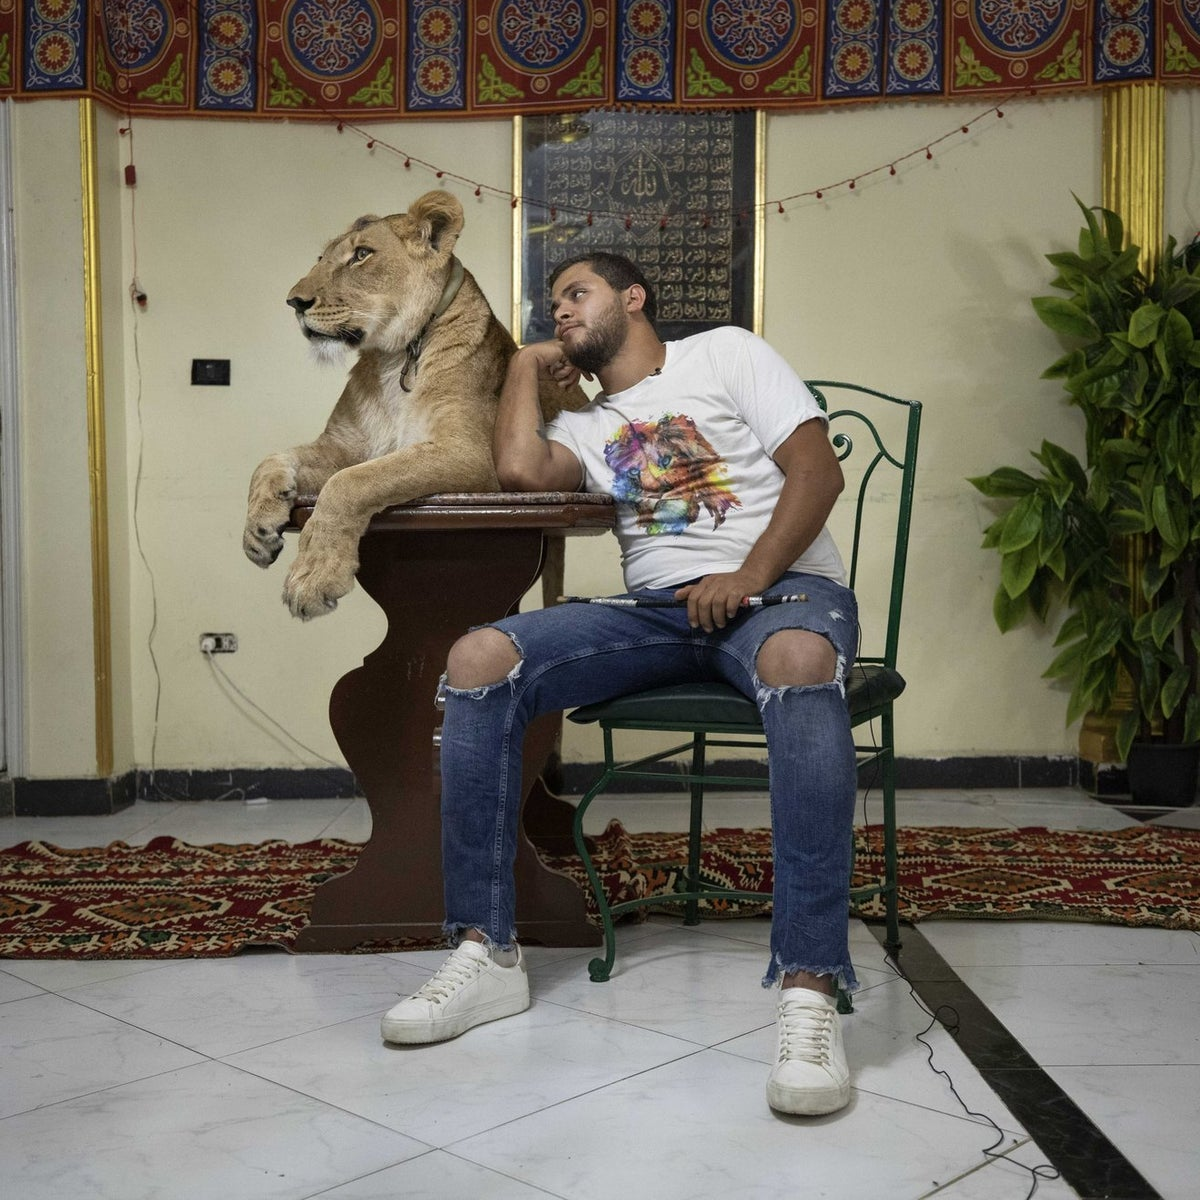 26-year-old lion tamer Ashraf el-Helw hugs his 5-year-old female African lion 'Joumana,' after performing a show, part of a coronavirus stay home and stay safe call to encourage people to stay home, inside his family apartment, in Cairo, Egypt, April 28, 2020.